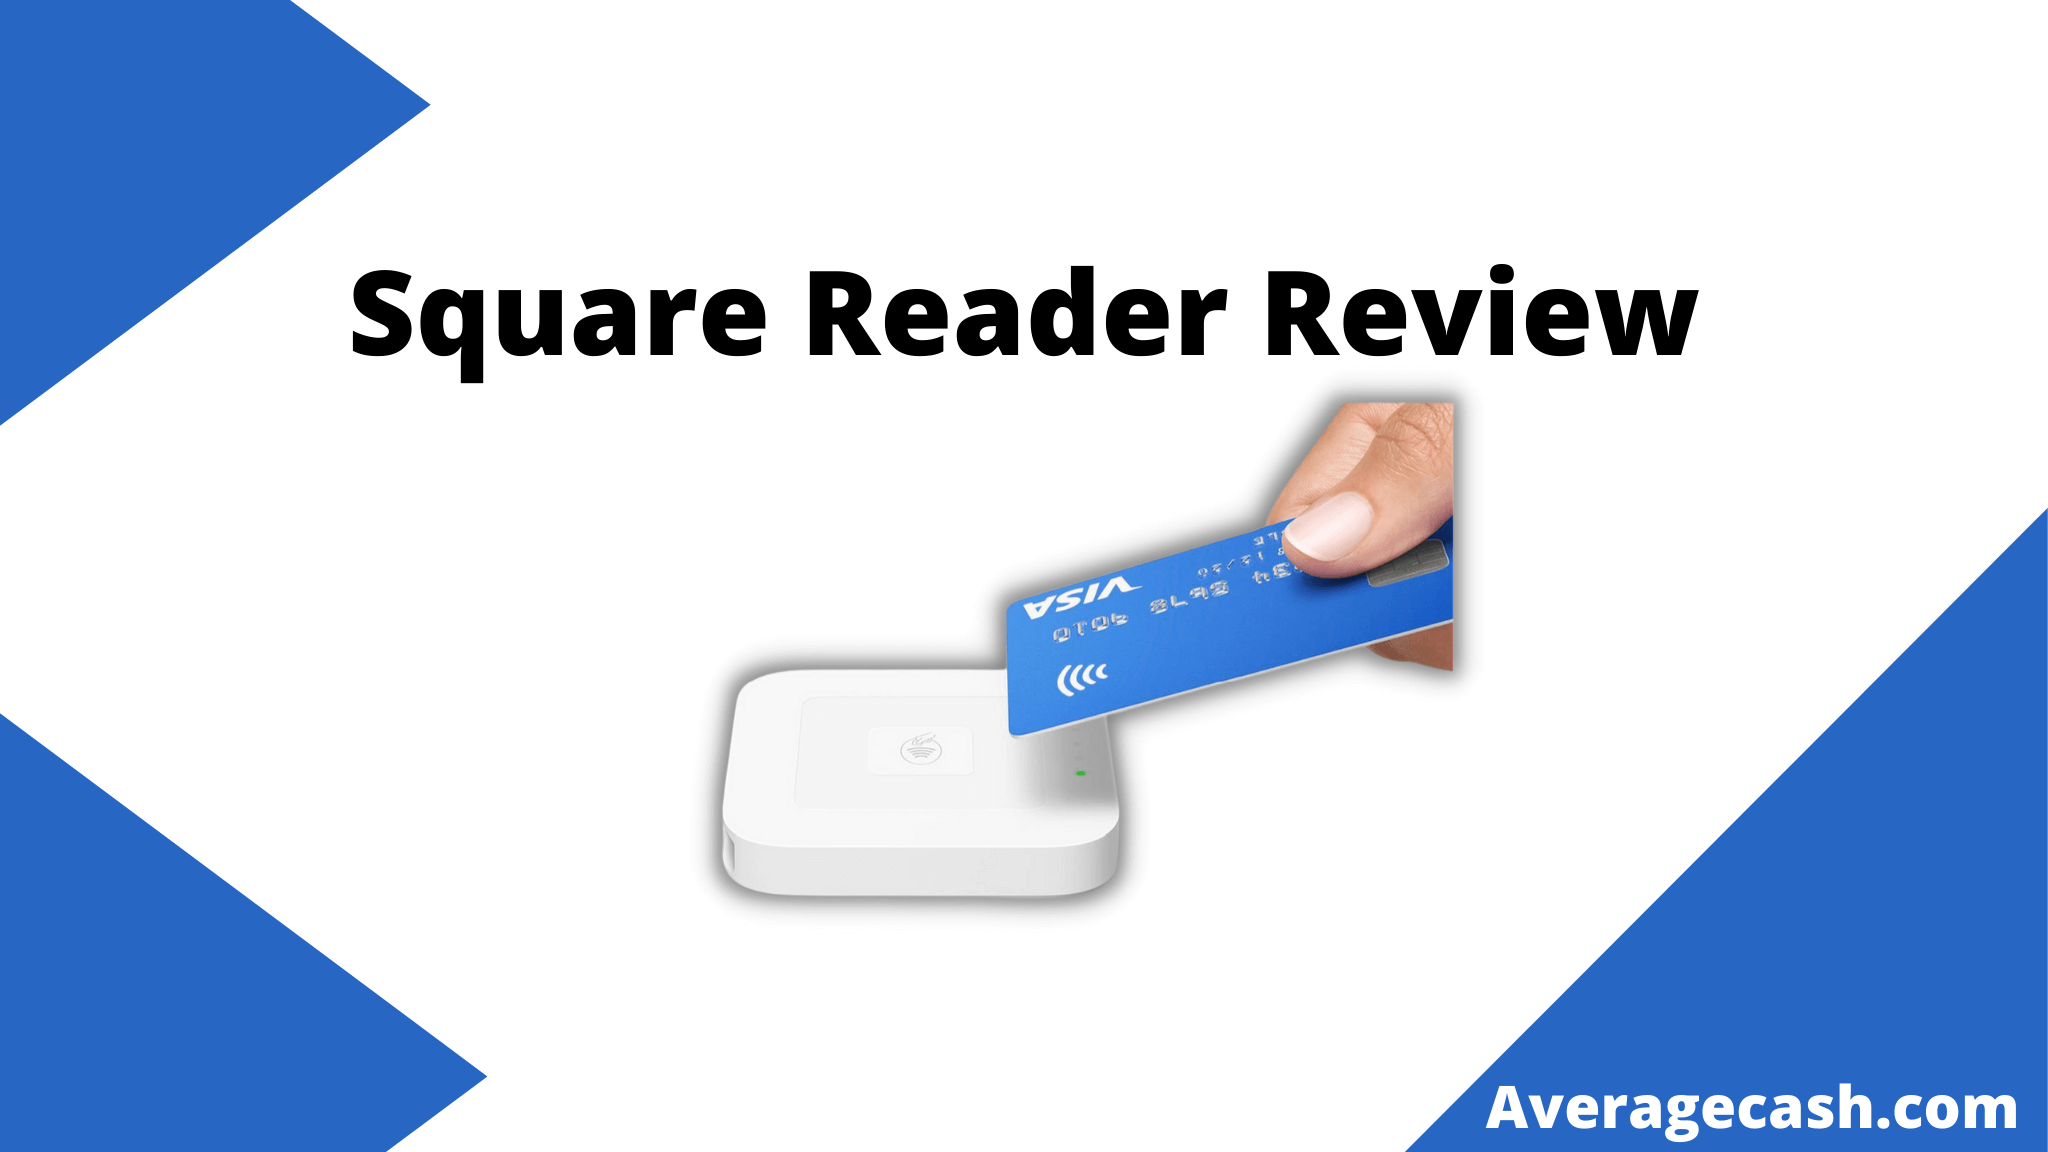 Square Reader Review, June 2021